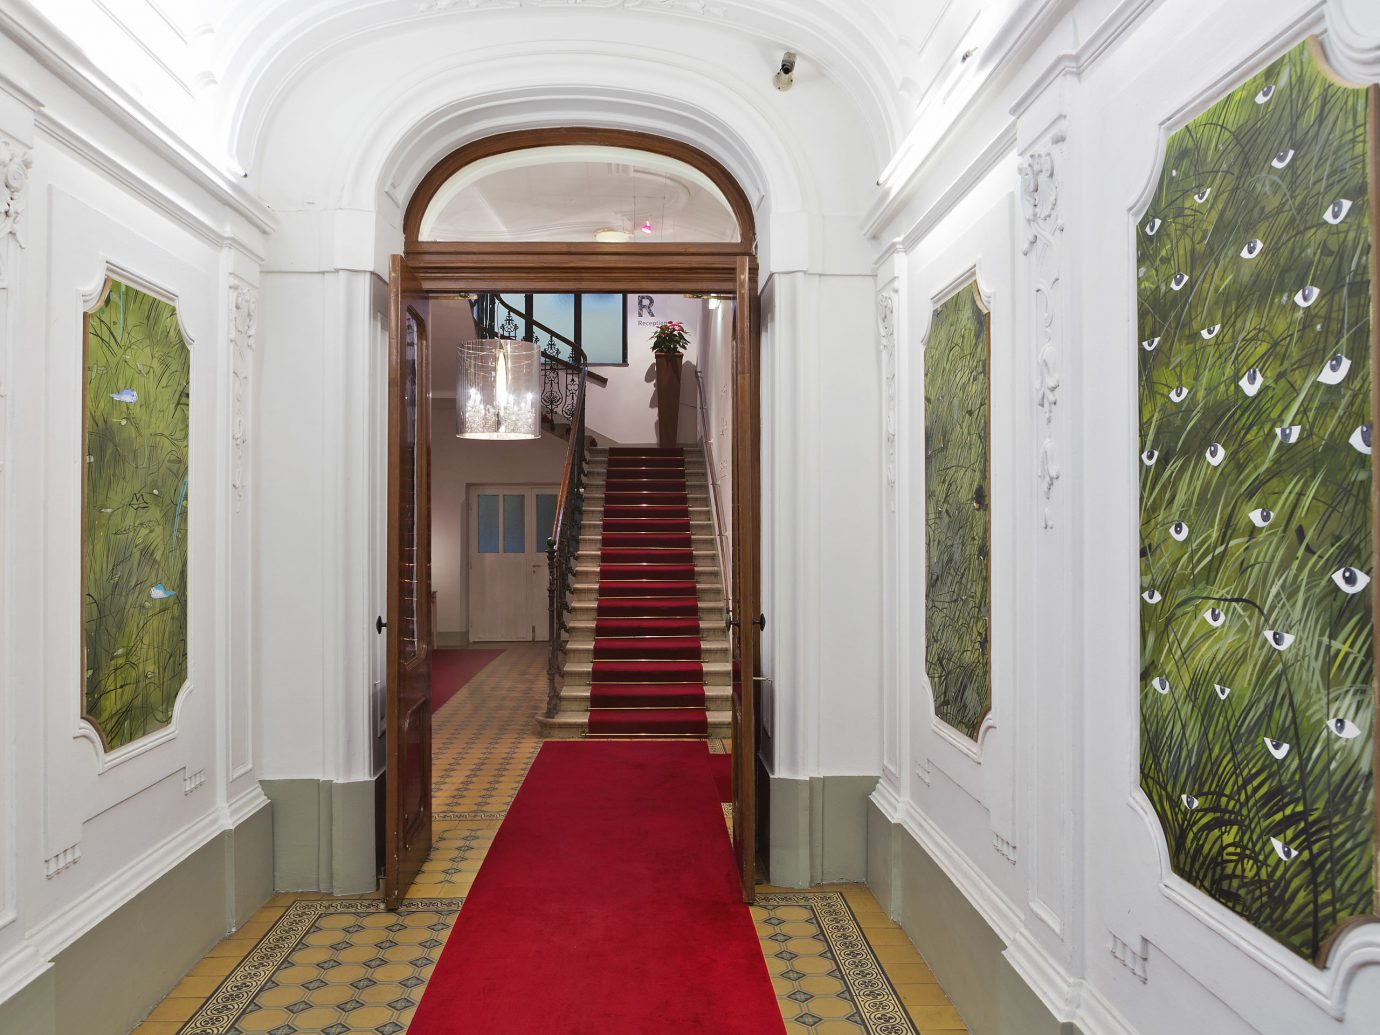 Austria europe Hotels Vienna property Architecture ceiling interior design estate real estate window home house Lobby apartment hall daylighting door facade